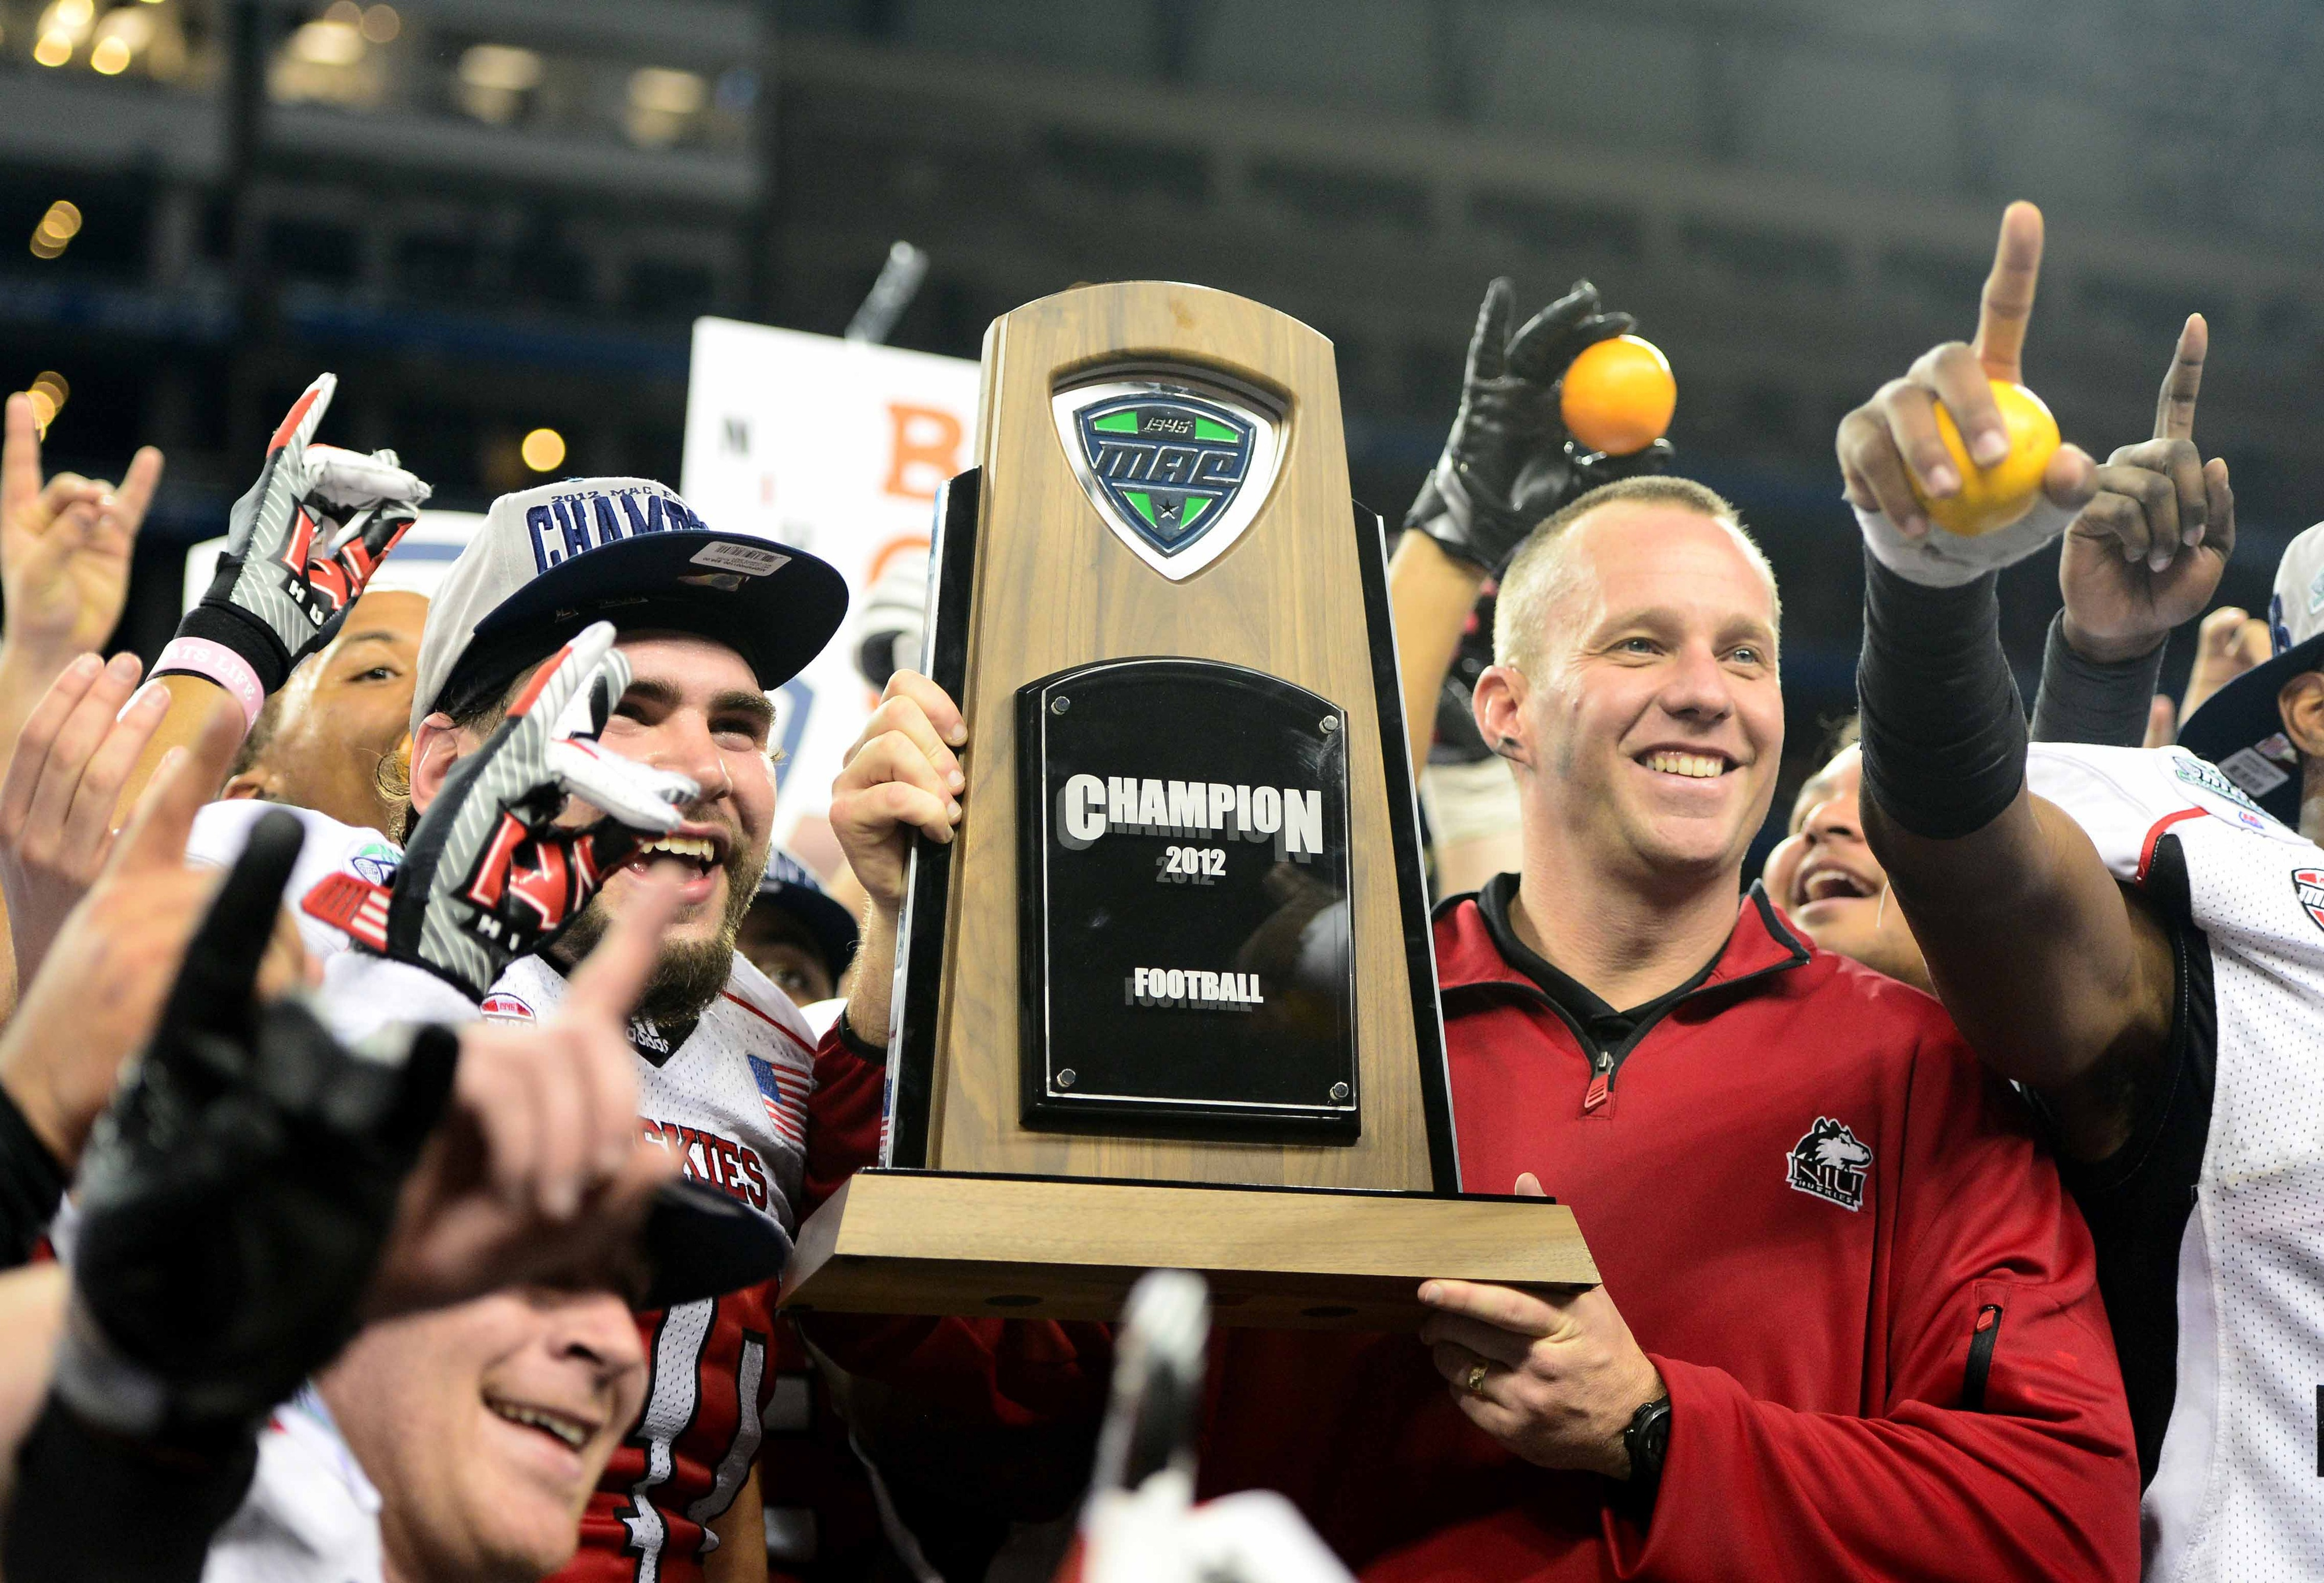 NIU Huskies win back-to-back MAC Championships and win their school-record 12th game in a season.